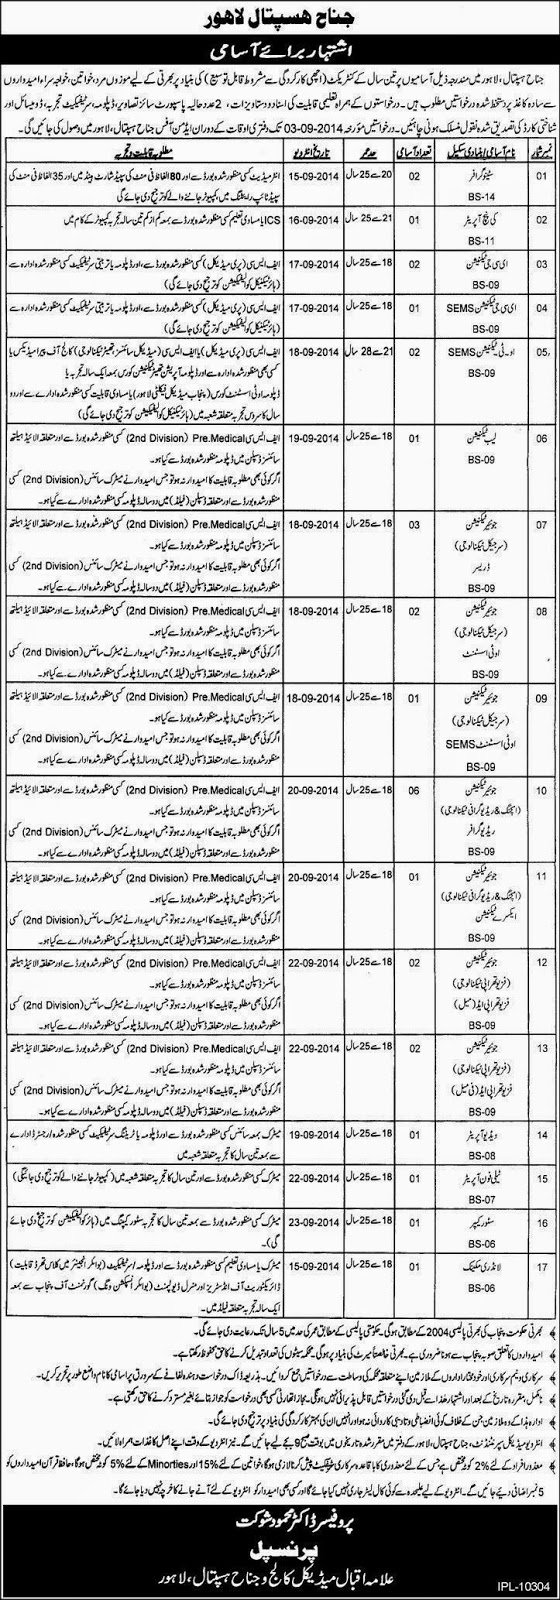 Lab Technician, Stenographer and Storekeeper Jobs in Jinnah Hospital, Lahore